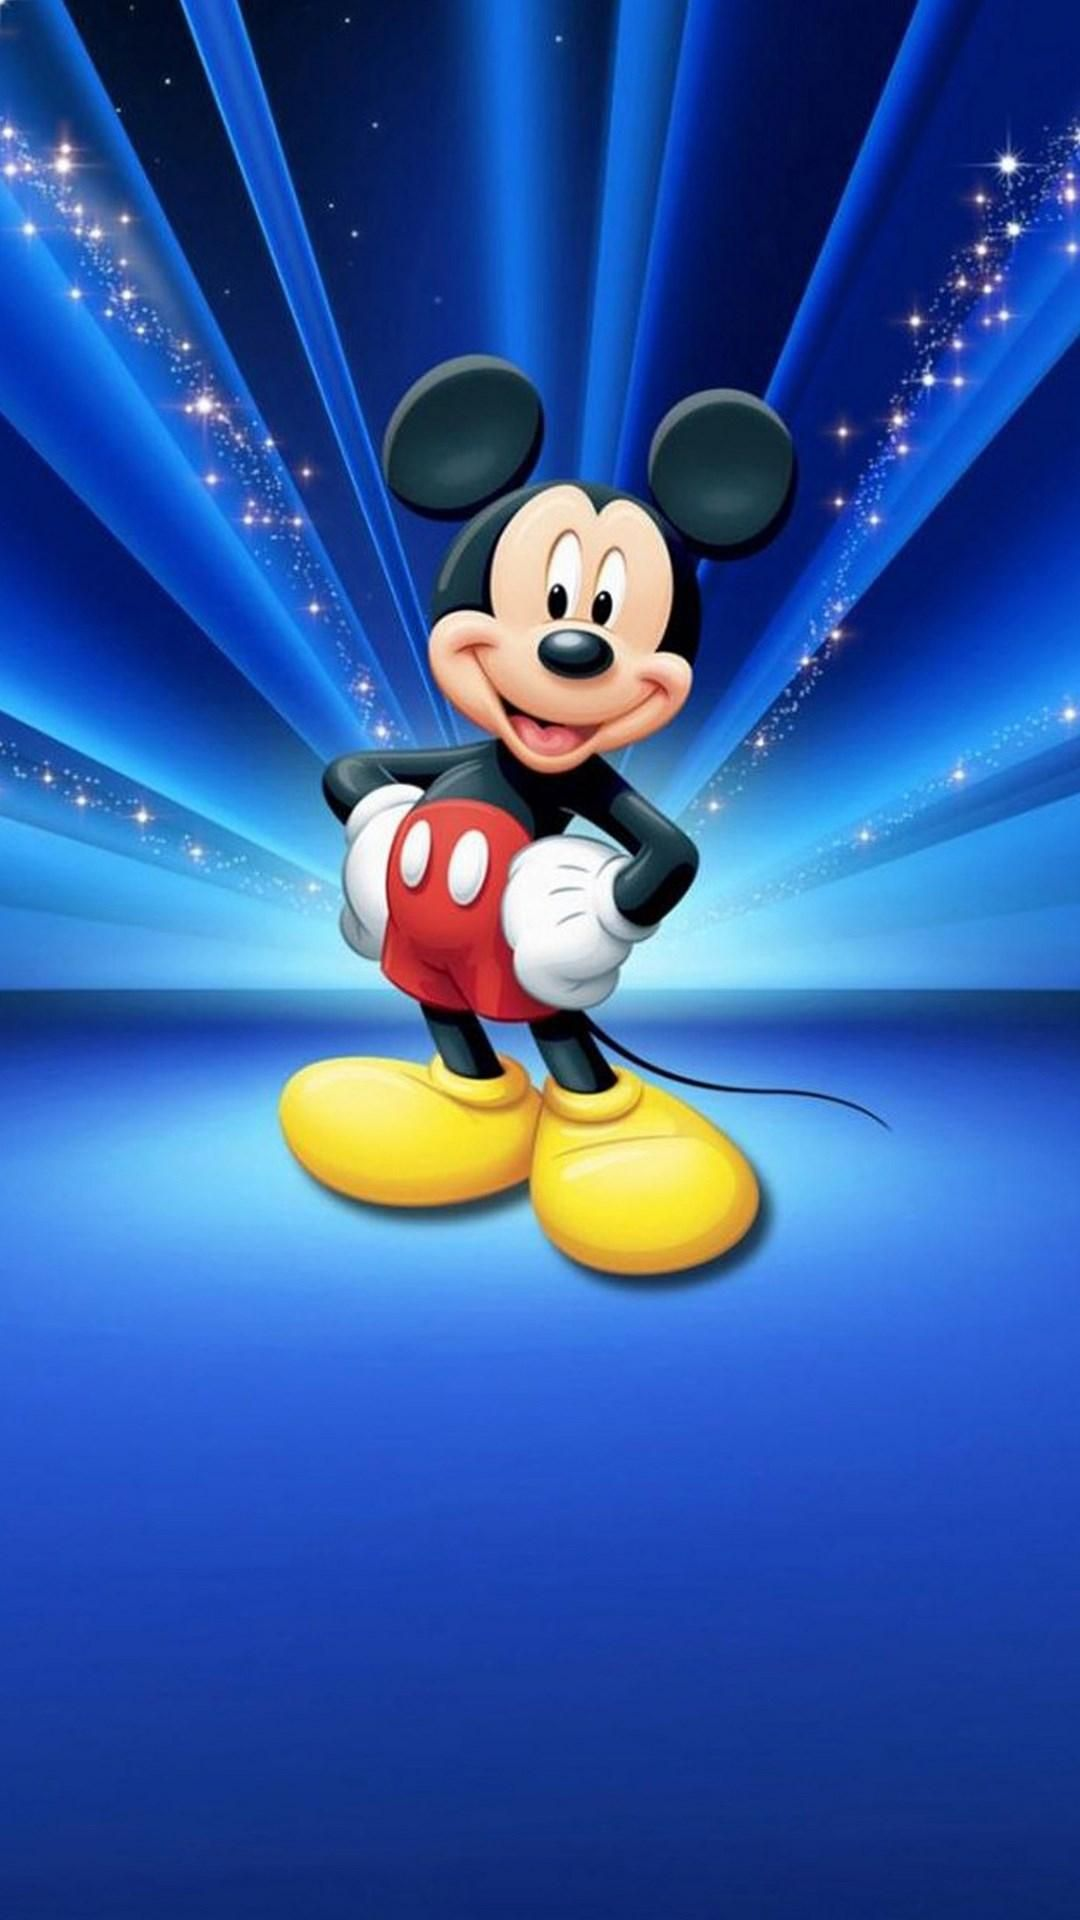 Minnie Mouse Wallpaper Home Screen In 2020 Mickey Mouse Wallpaper Mickey Mouse Pictures Mickey Mouse Images